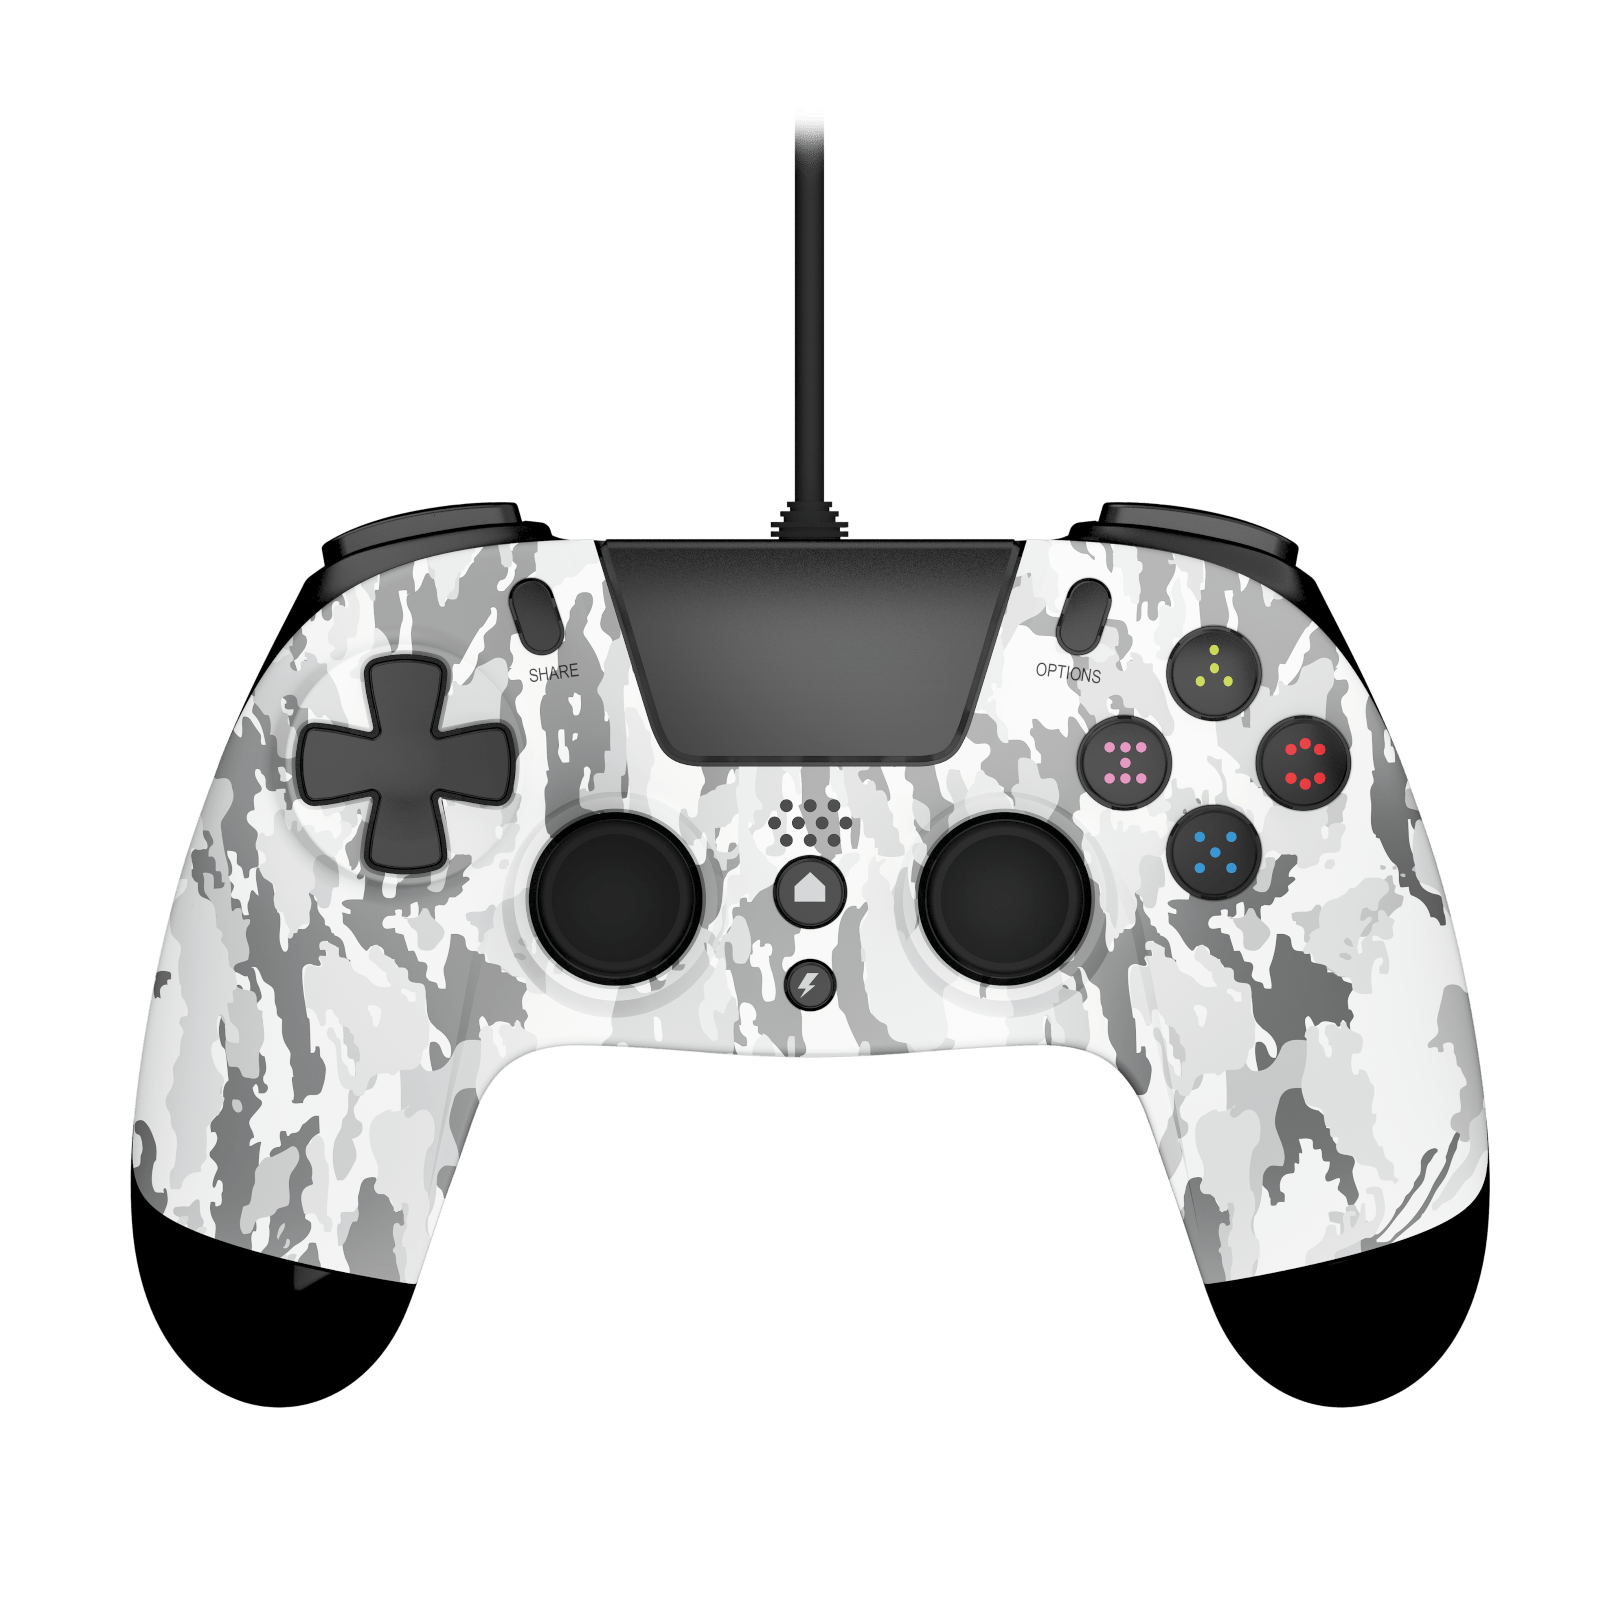 GIOTECK ANNOUNCE FORTNITE-INSPIRED CONTROLLERS TO CELEBRATE NEW SPLIT-SCREEN MODE